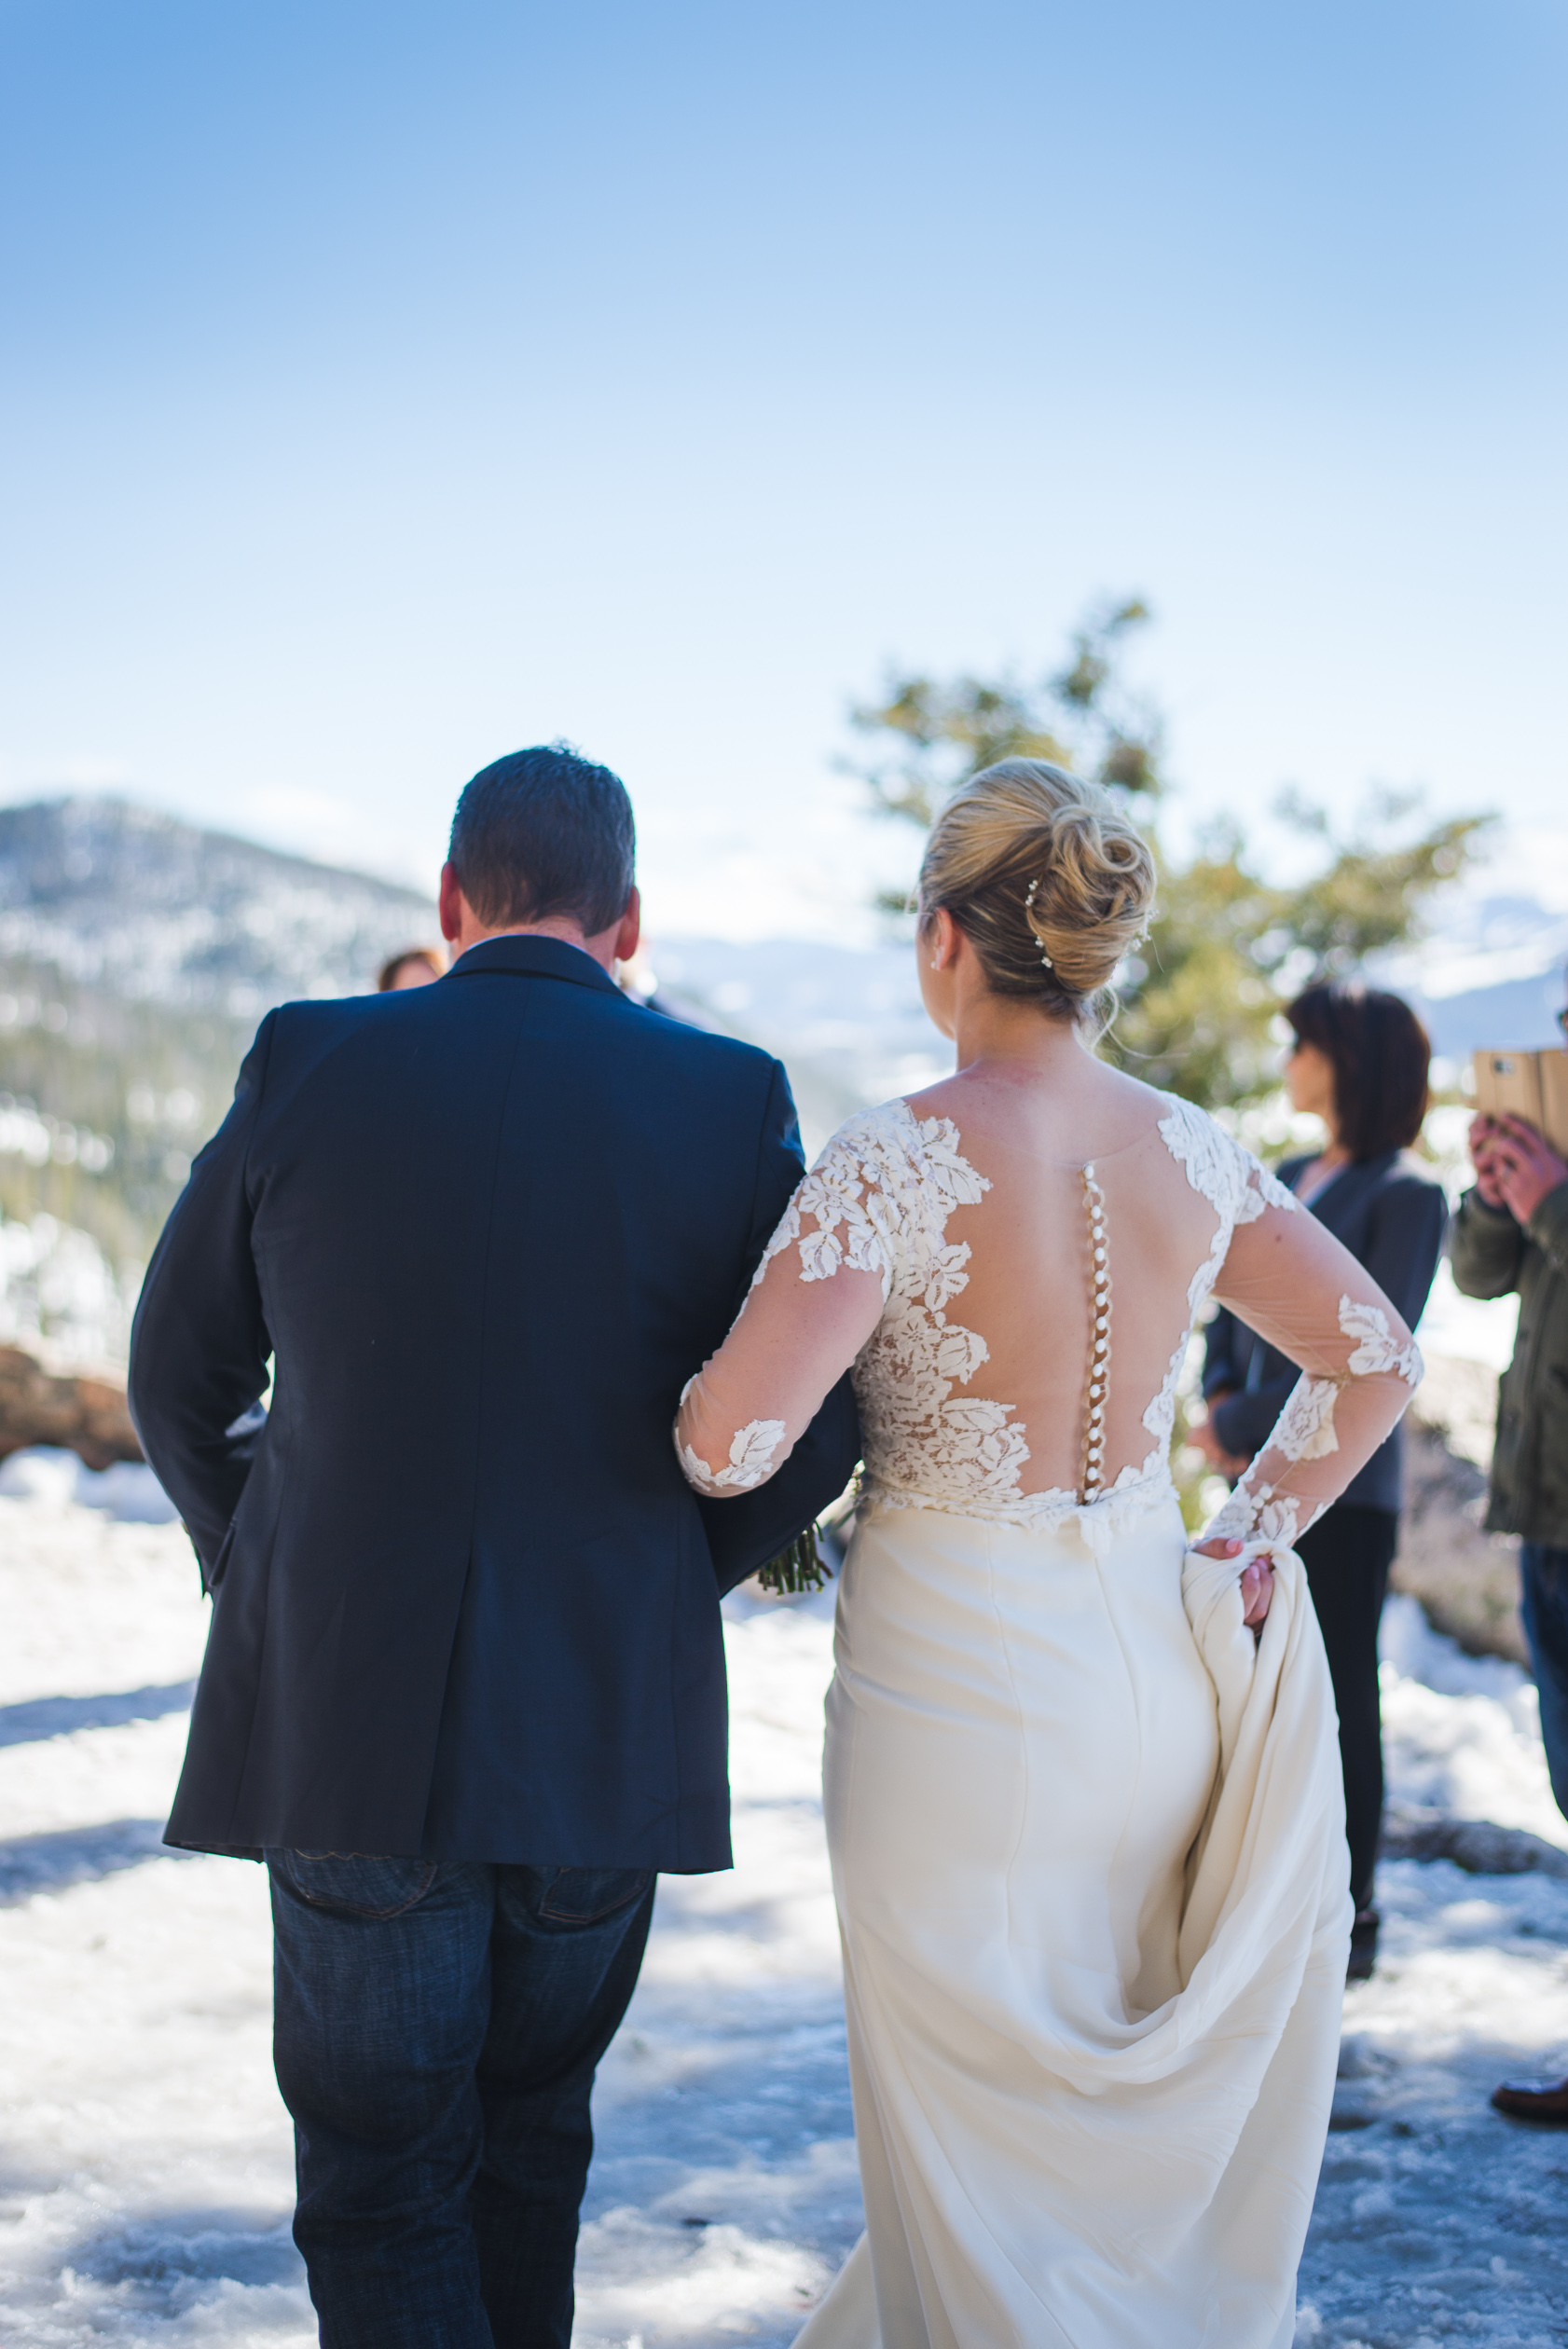 Intimate Springtime Colorado mountain wedding at Sapphire Point | Keeping Composure Photography + Summit Mountain Weddings